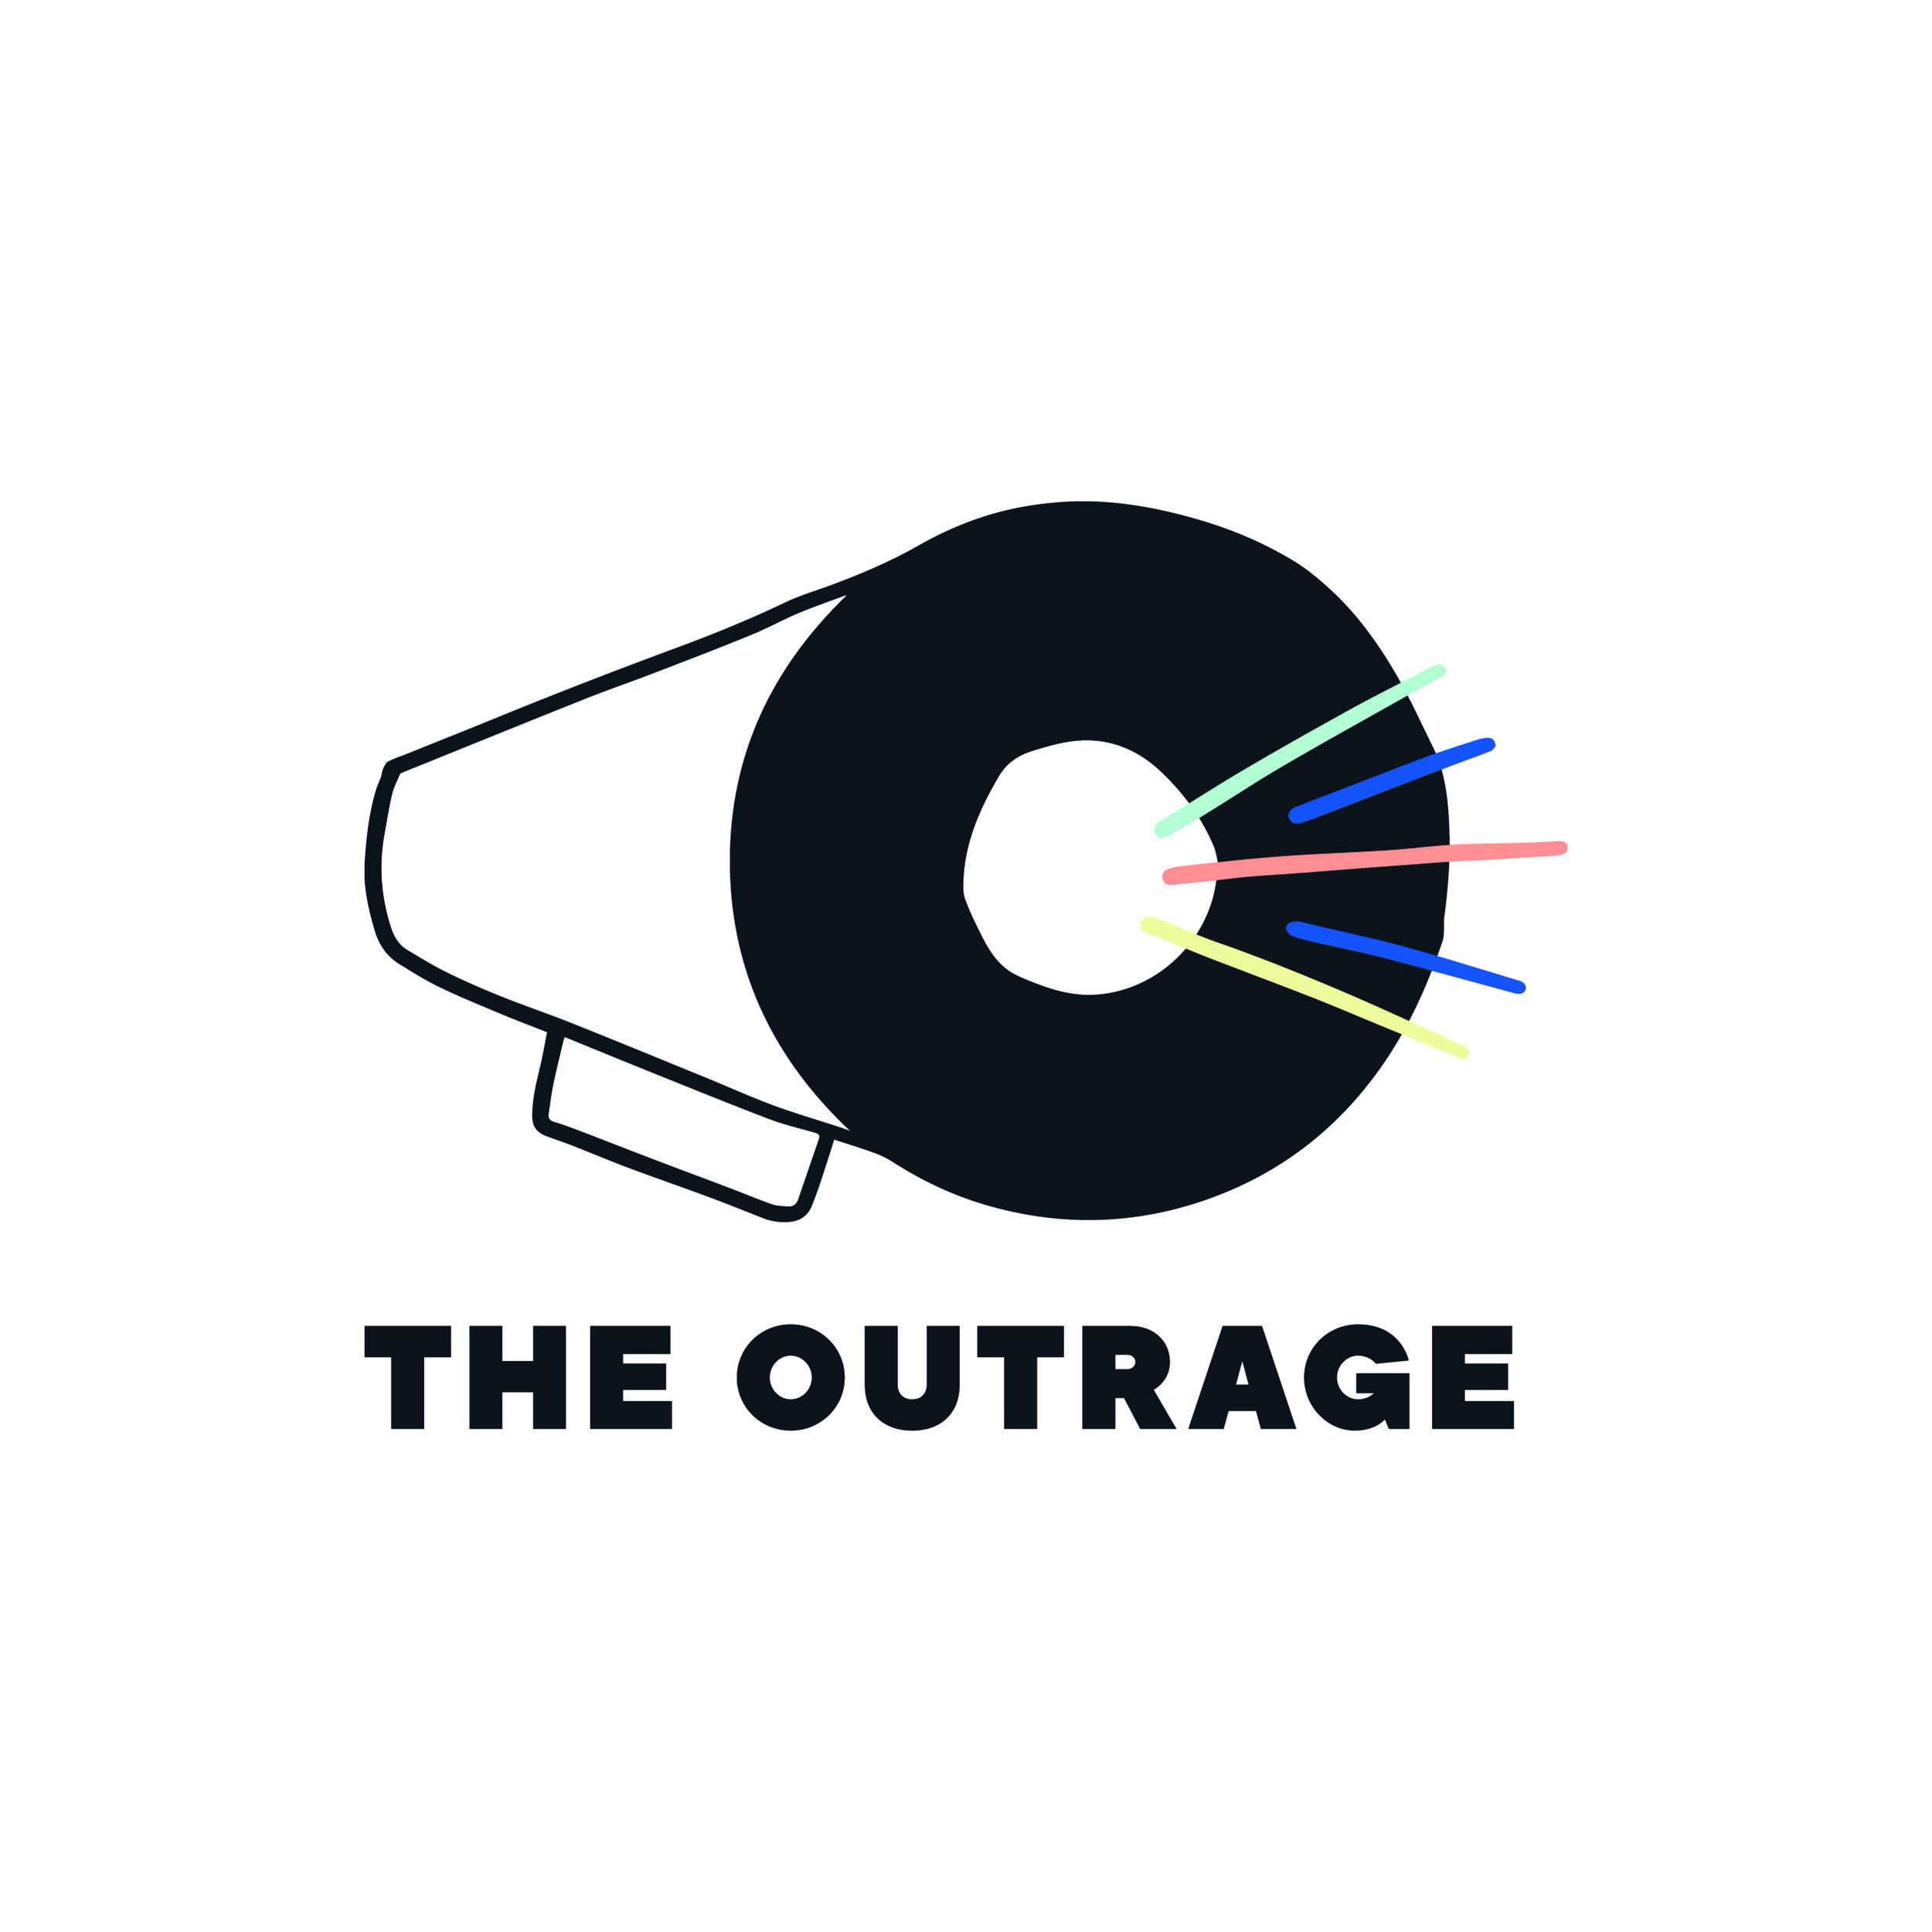 THE-OUTRAGE-SPREAD-04.jpg